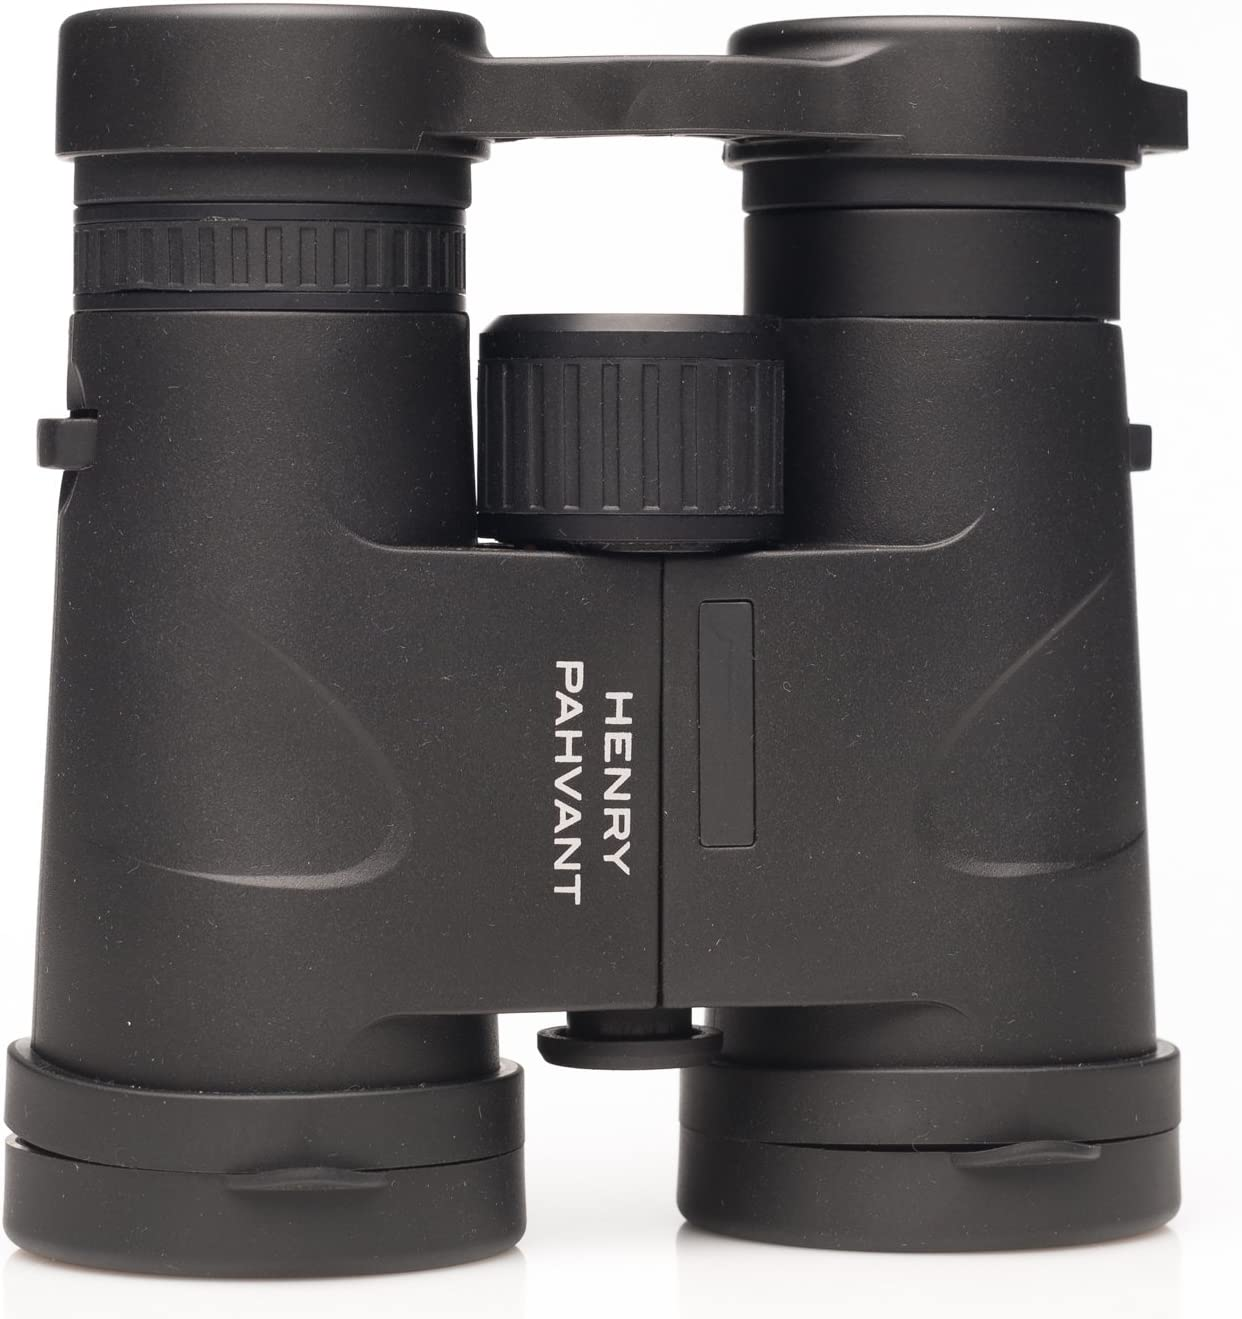 Henry Pahvant 10×42 Hunting Binoculars – Waterproof, Full HD. Lightweight, Ultra Clear Focus and Brilliant Color – Fog Proof